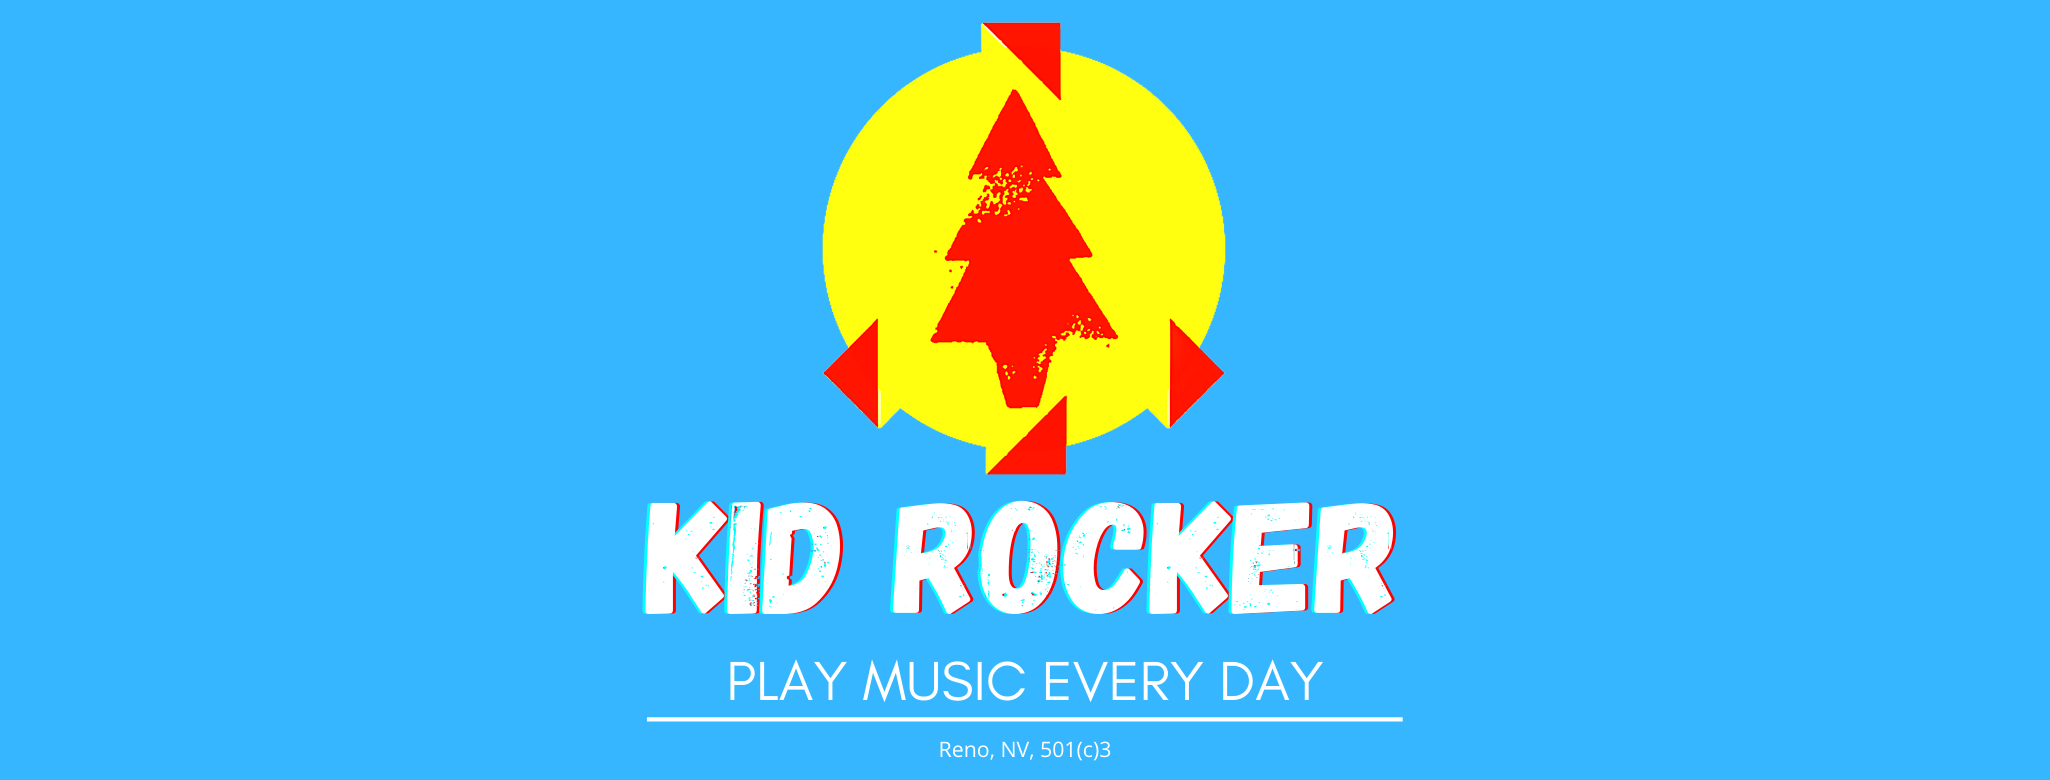 Kid rocker facebook